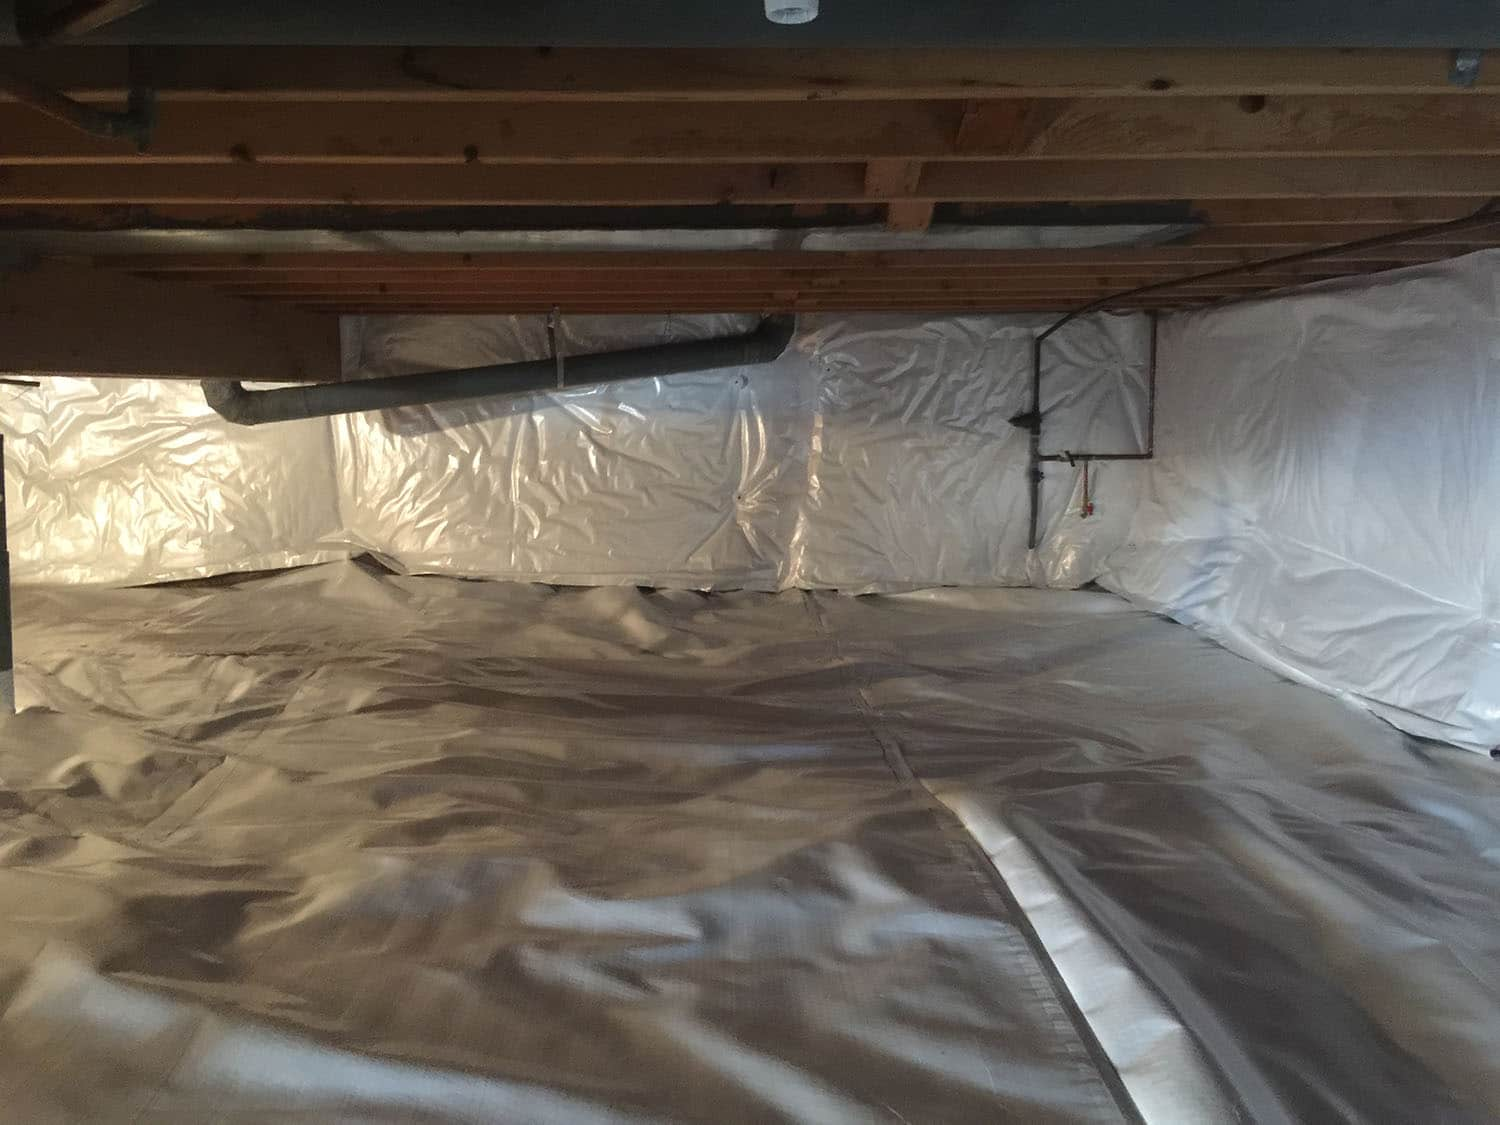 Crawl Space Insulation & Encapsulation Services In Denver, CO